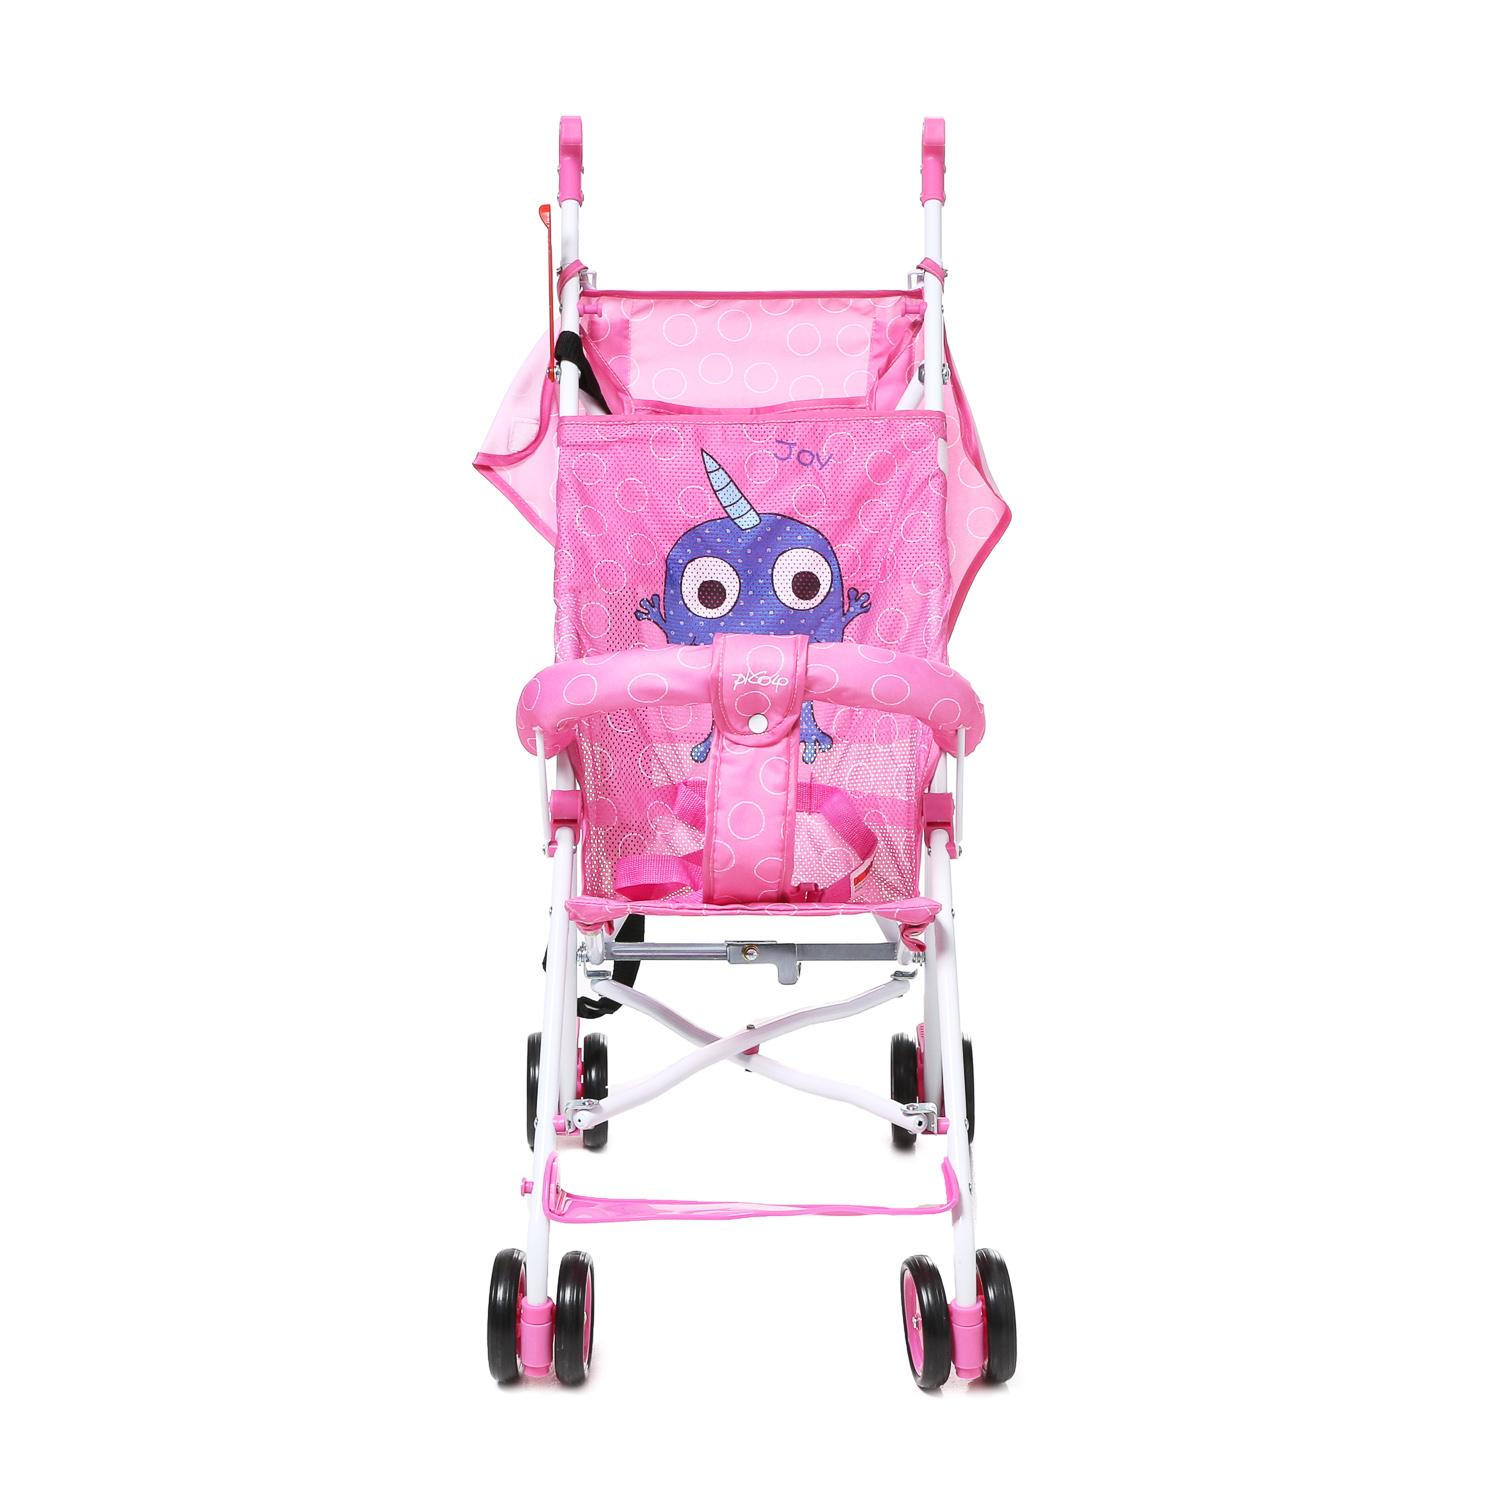 05939517002 Baby Strollers for sale - Strollers for Babies online brands